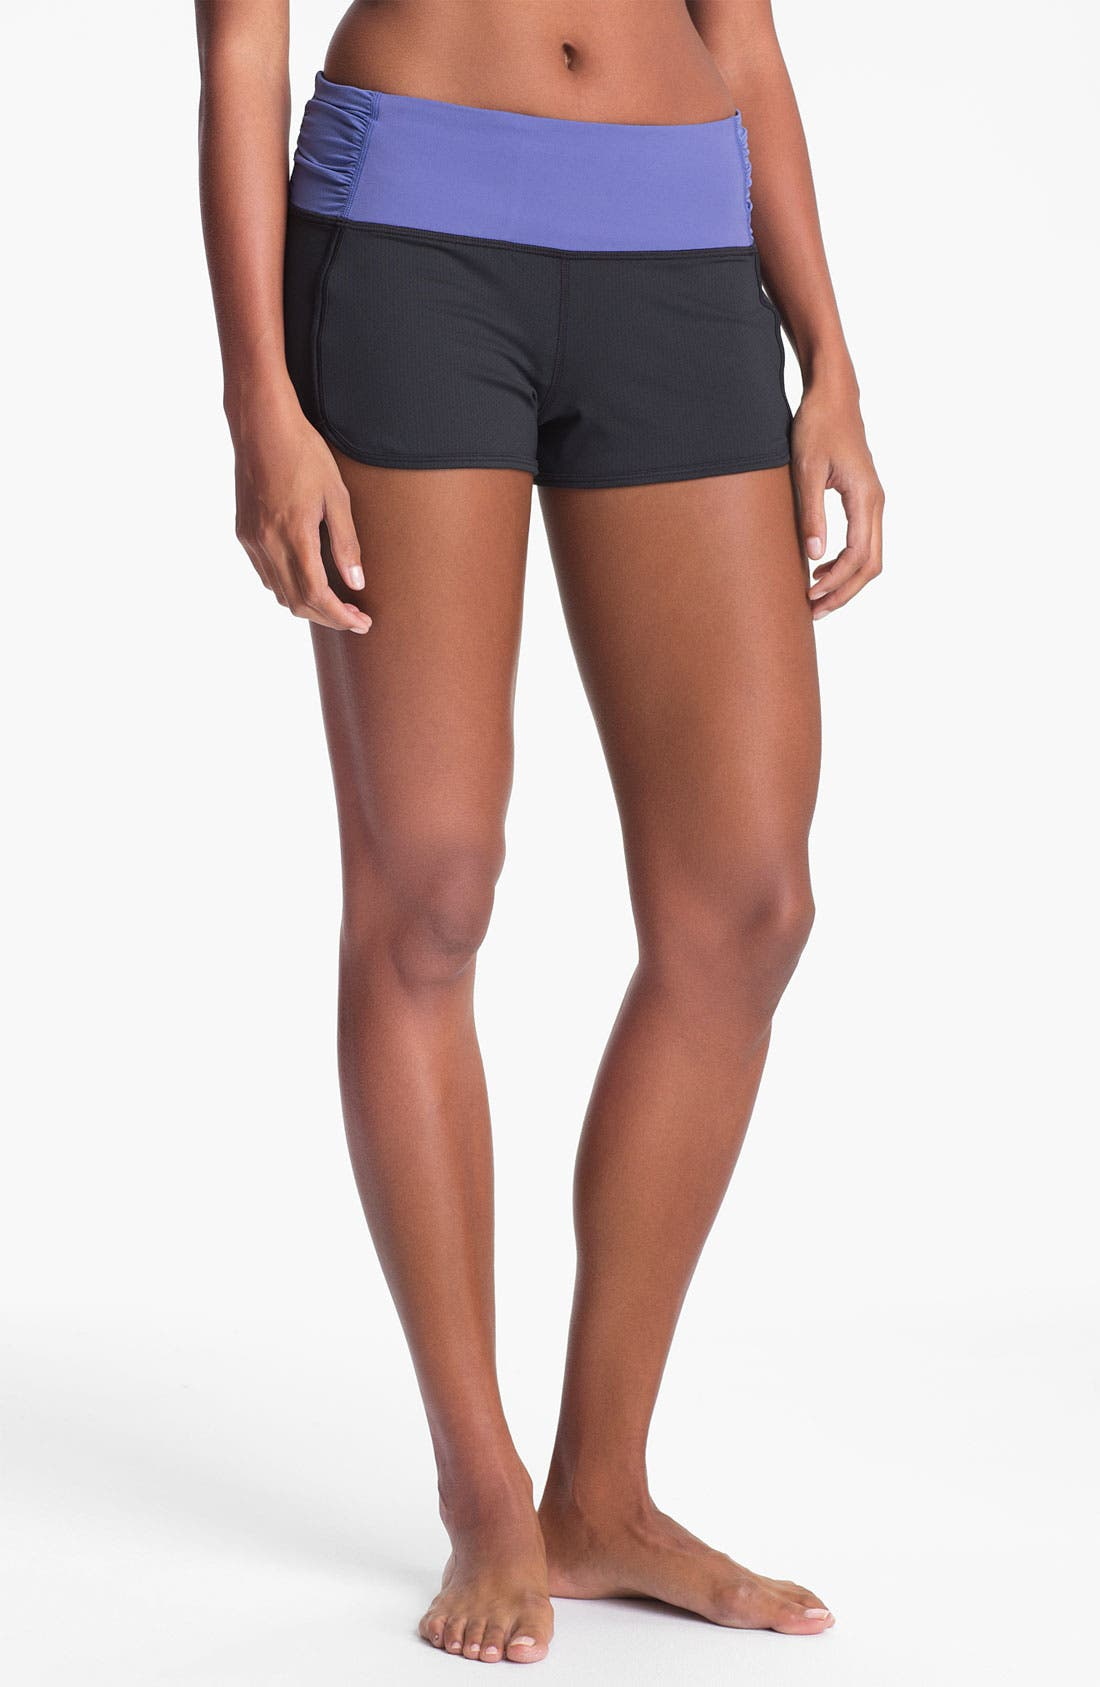 Alternate Image 1 Selected - Under Armour 'Hot Class' Shorts